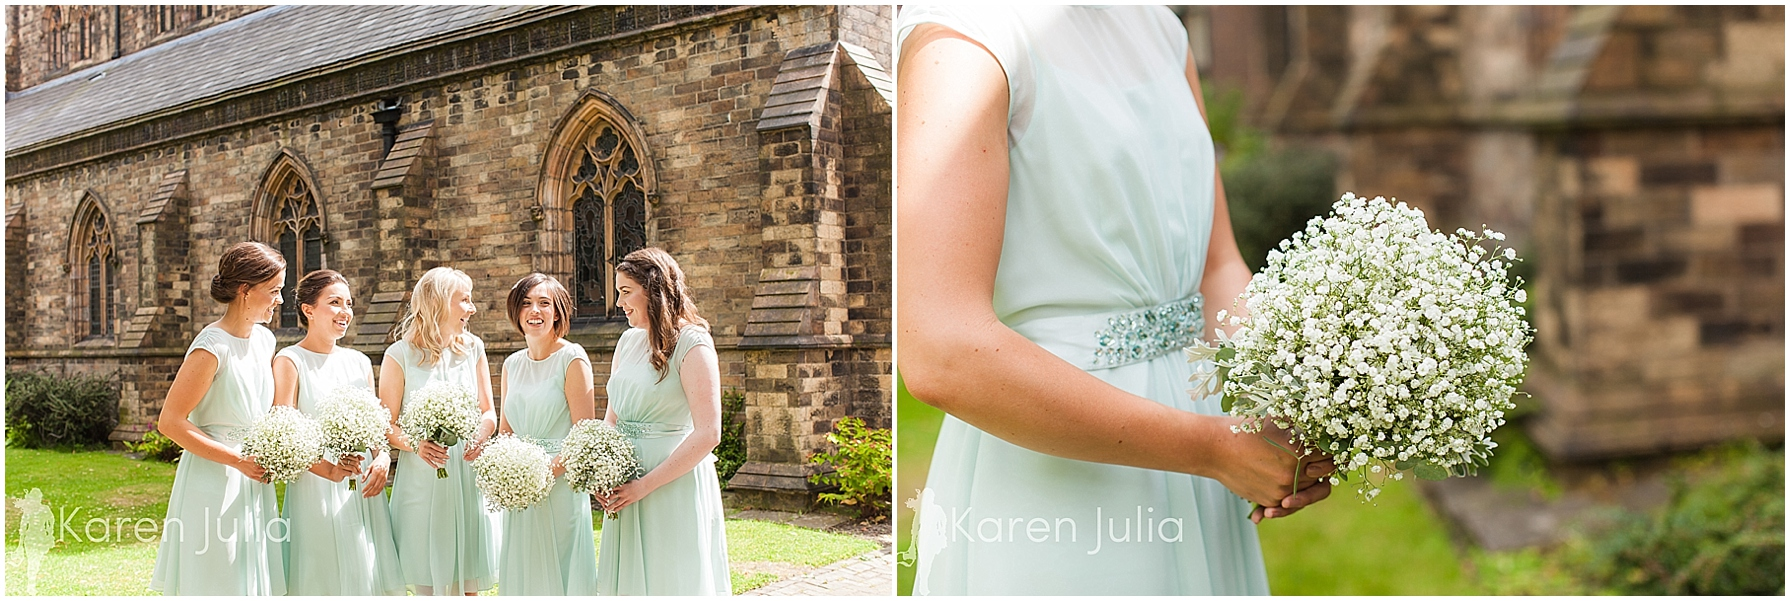 bridesmaids, mint green dresses, outside church